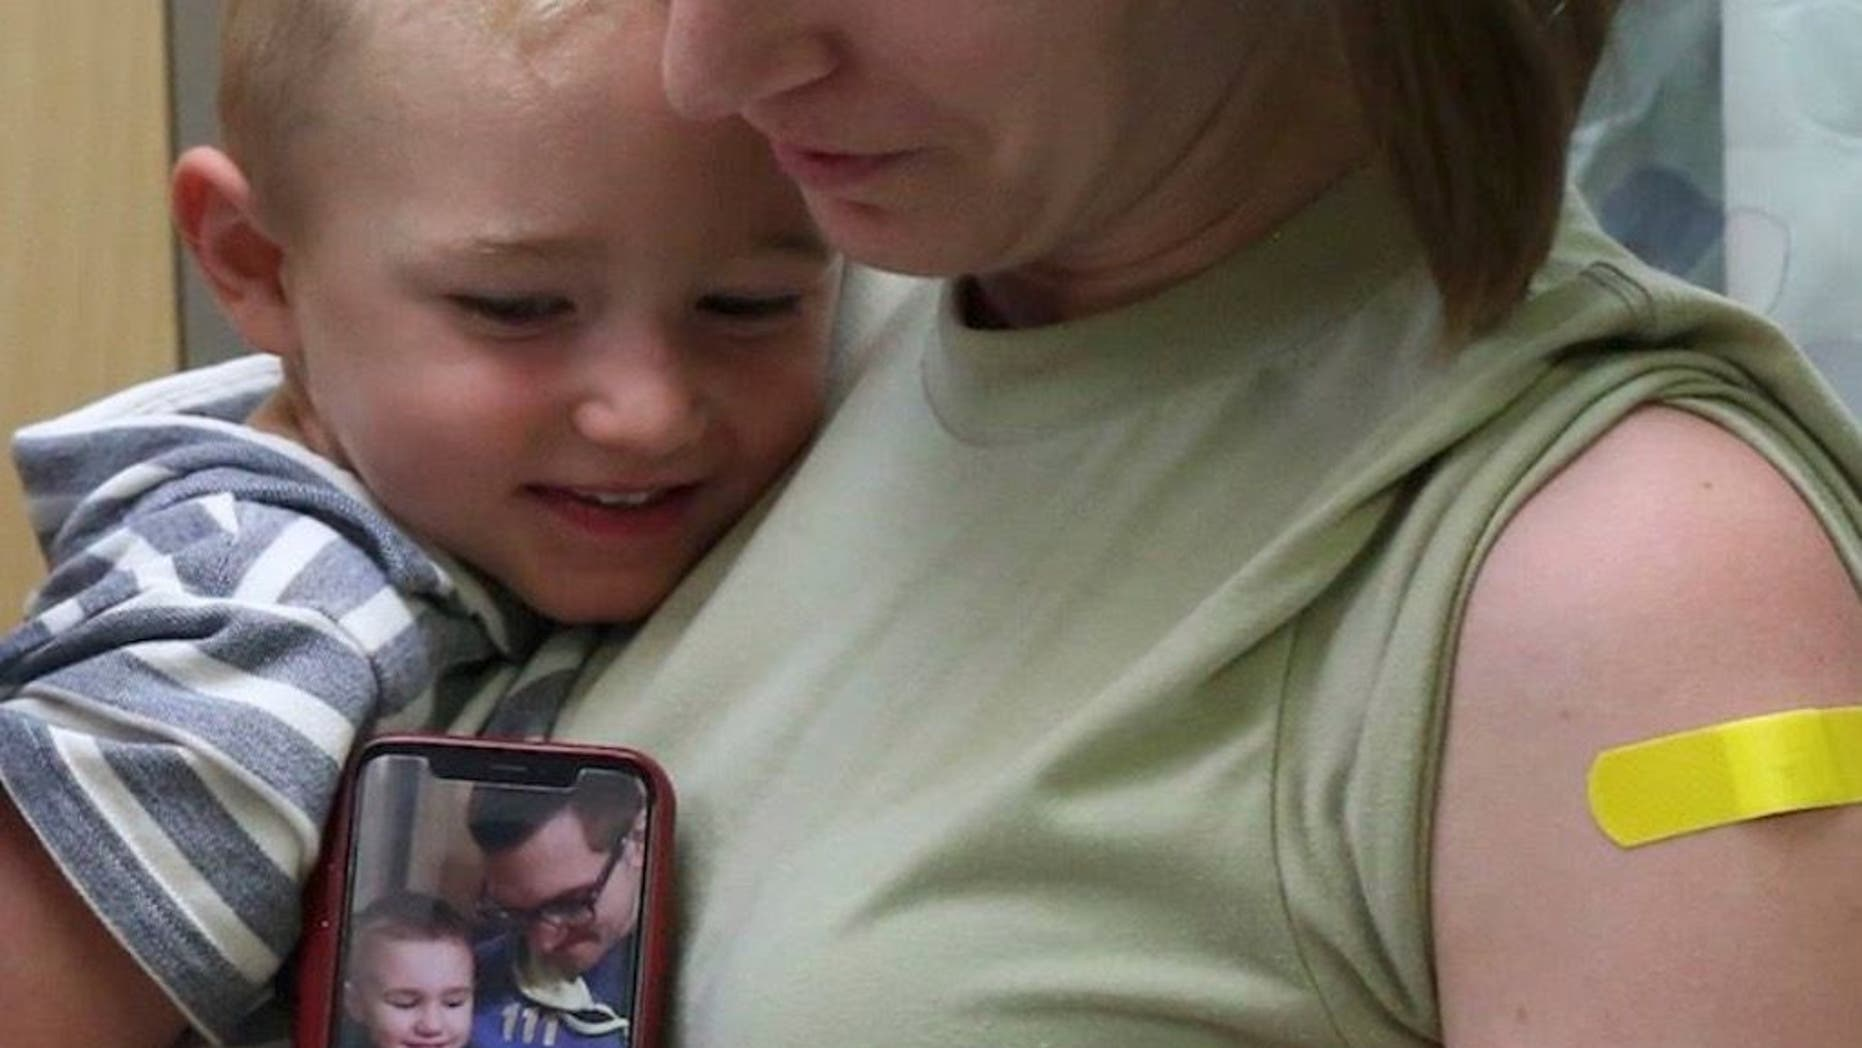 Laura Sidari, pictured holding one of her children and a photo of her husband with Leon, shortly after their second was born, is sharing the #FluShotsforLeon campaign after the boy died last year from complications of the virus.